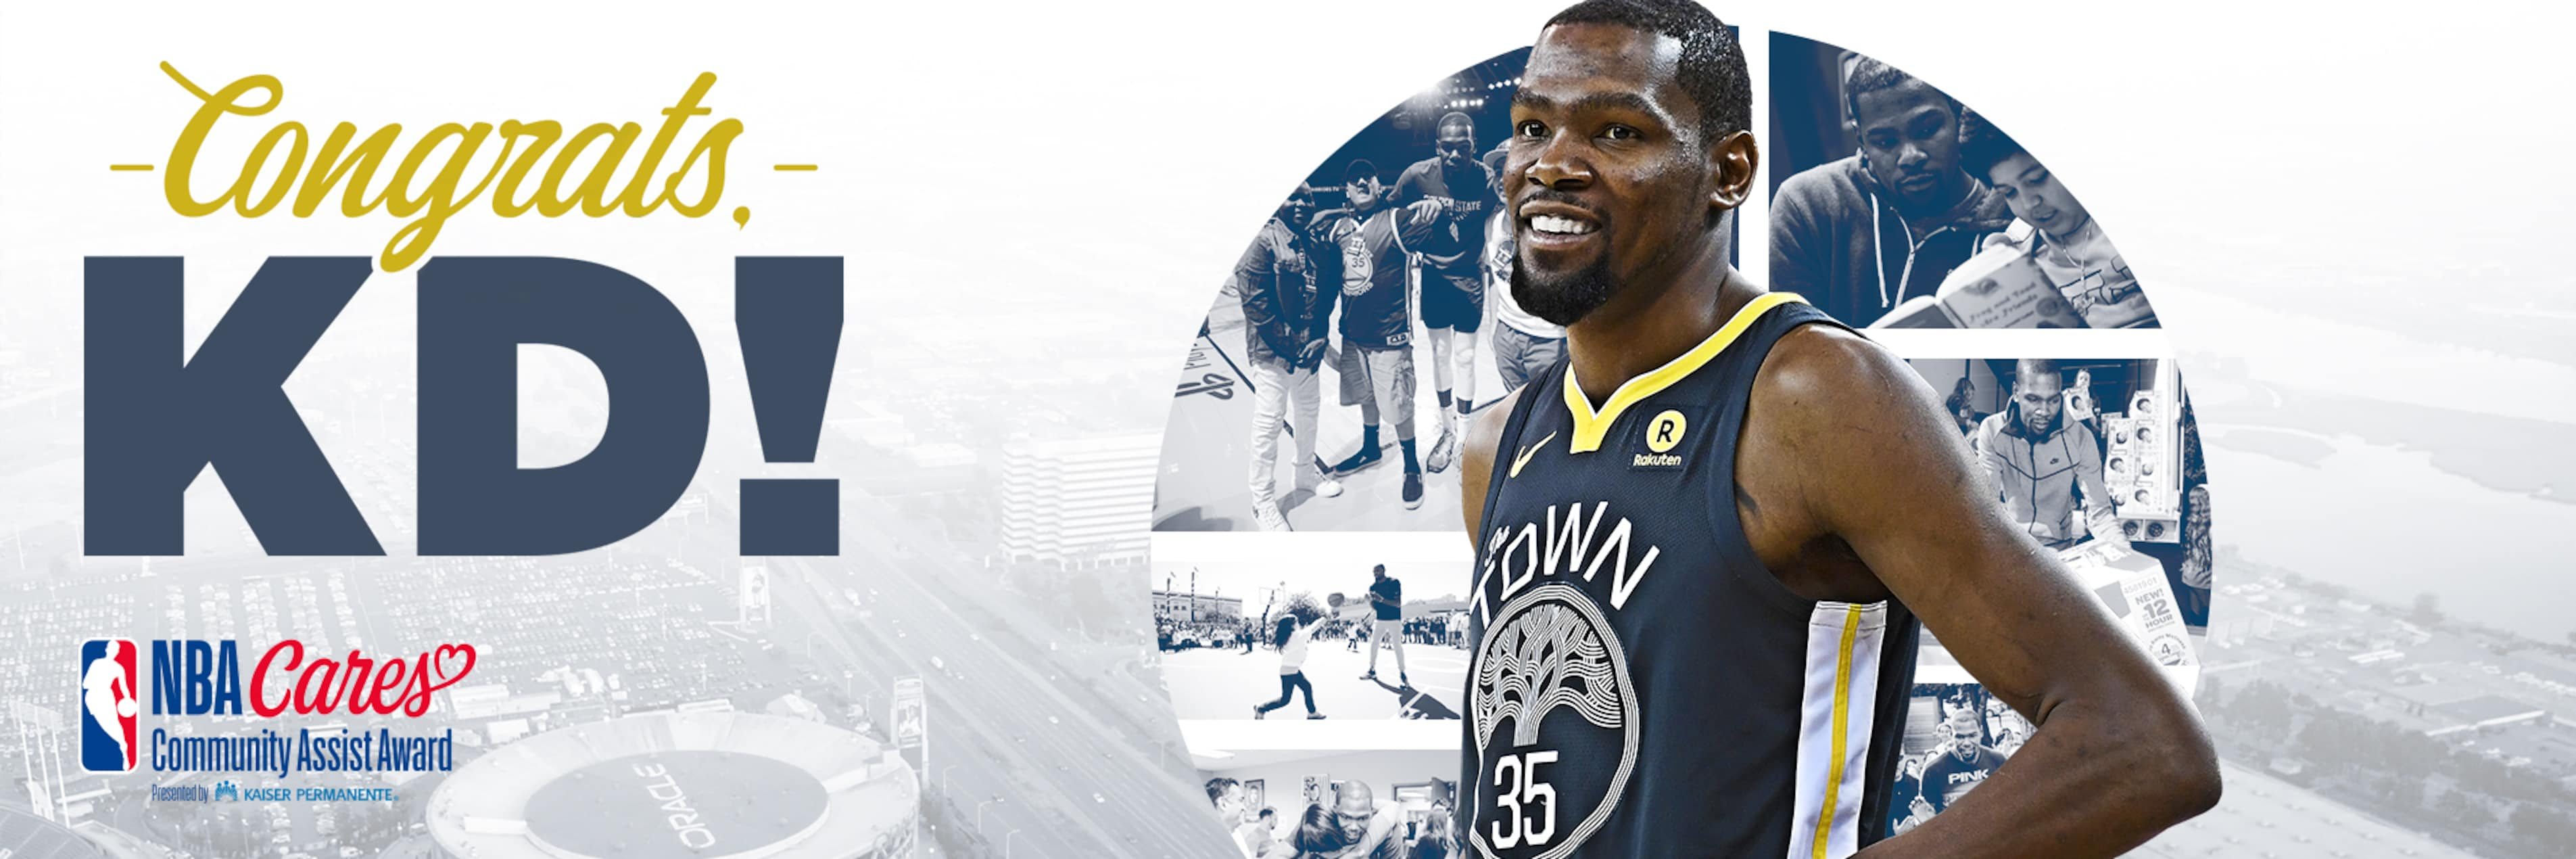 Kevin Durant Receives Seasonlong NBA Cares Community Assist Award Presented by Kaiser Permanente